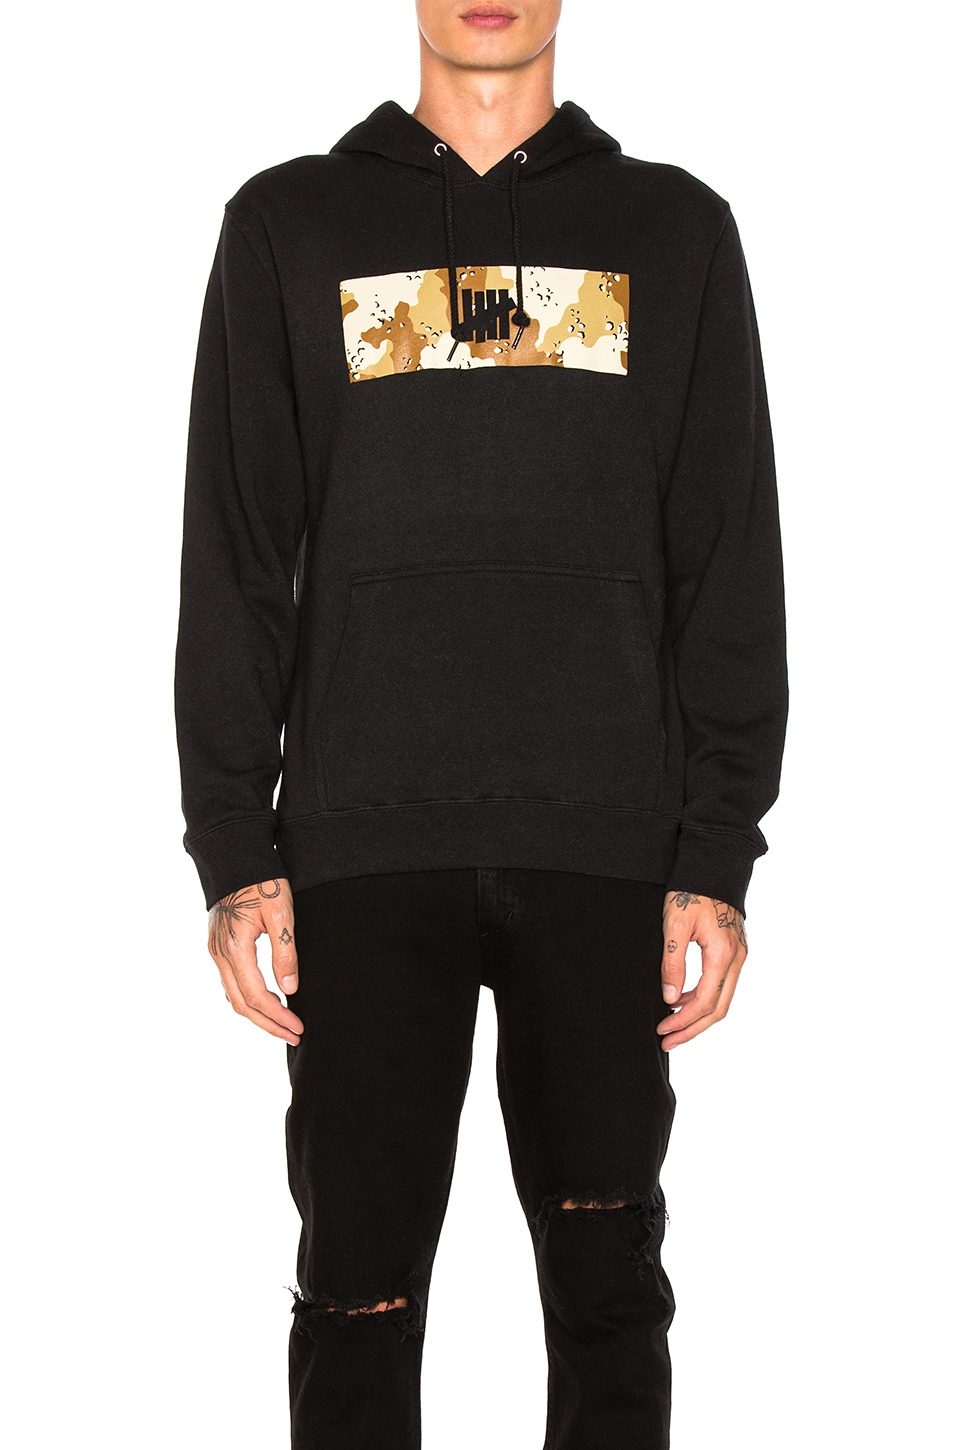 Desert Block Hoody by Undefeated